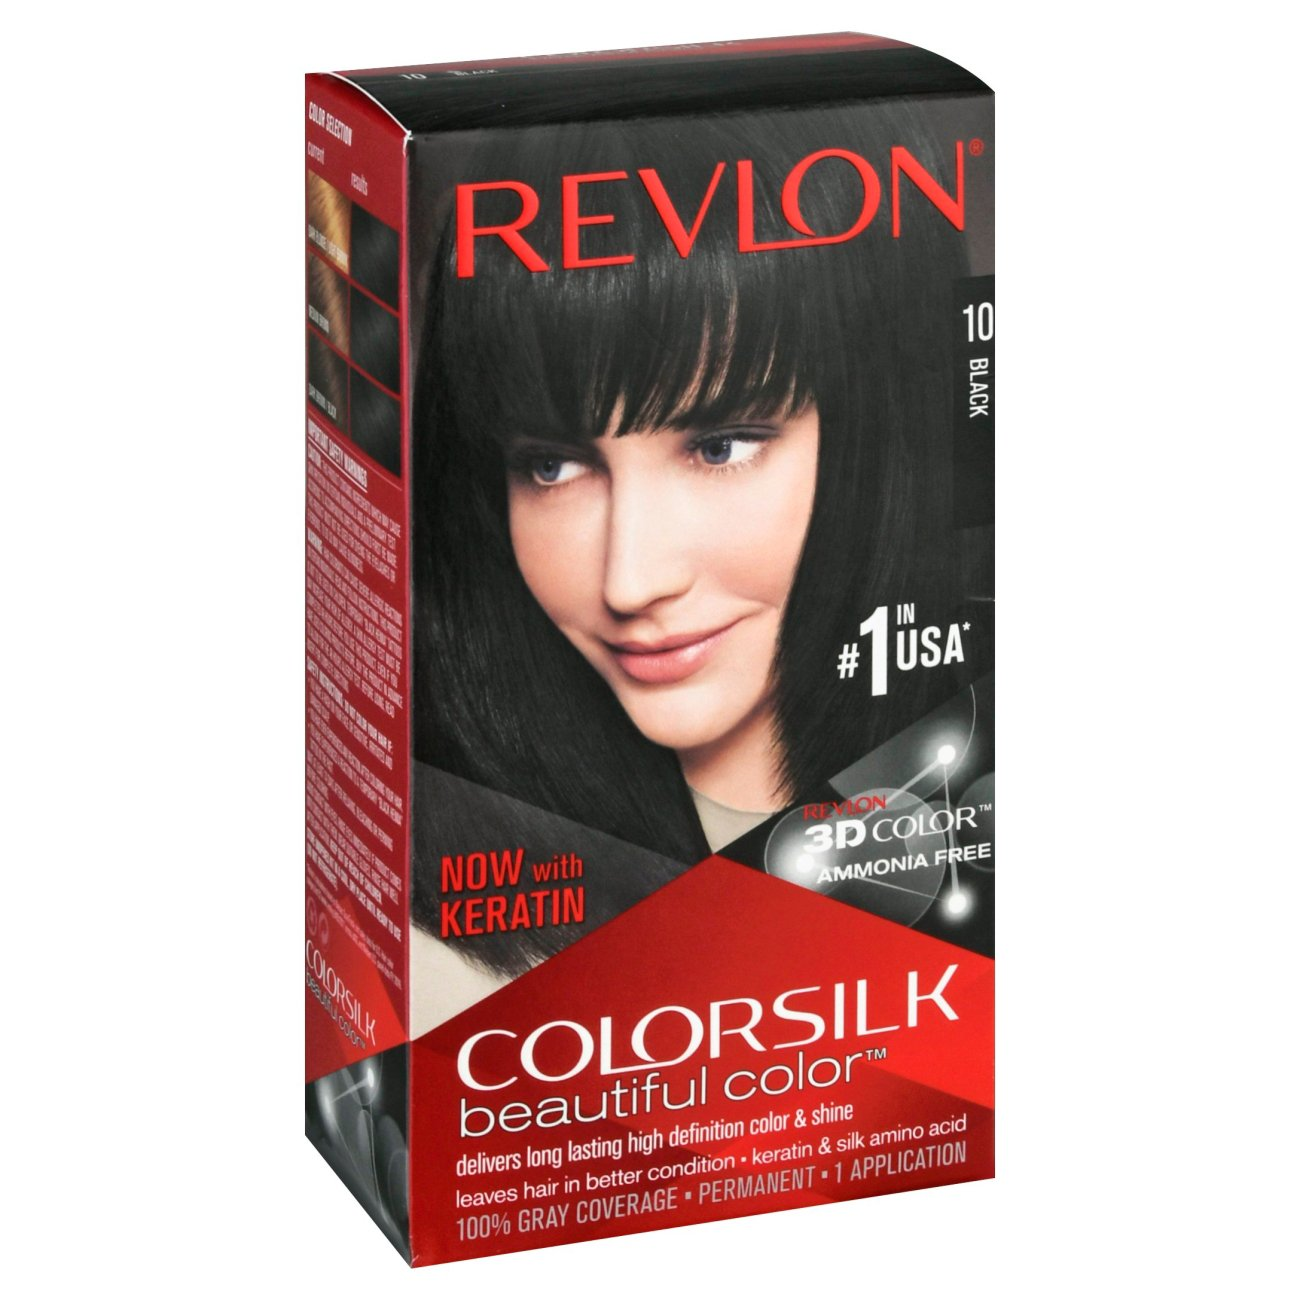 Revlon Colorsilk Beautiful Color 10 Black Shop Hair Color At Heb